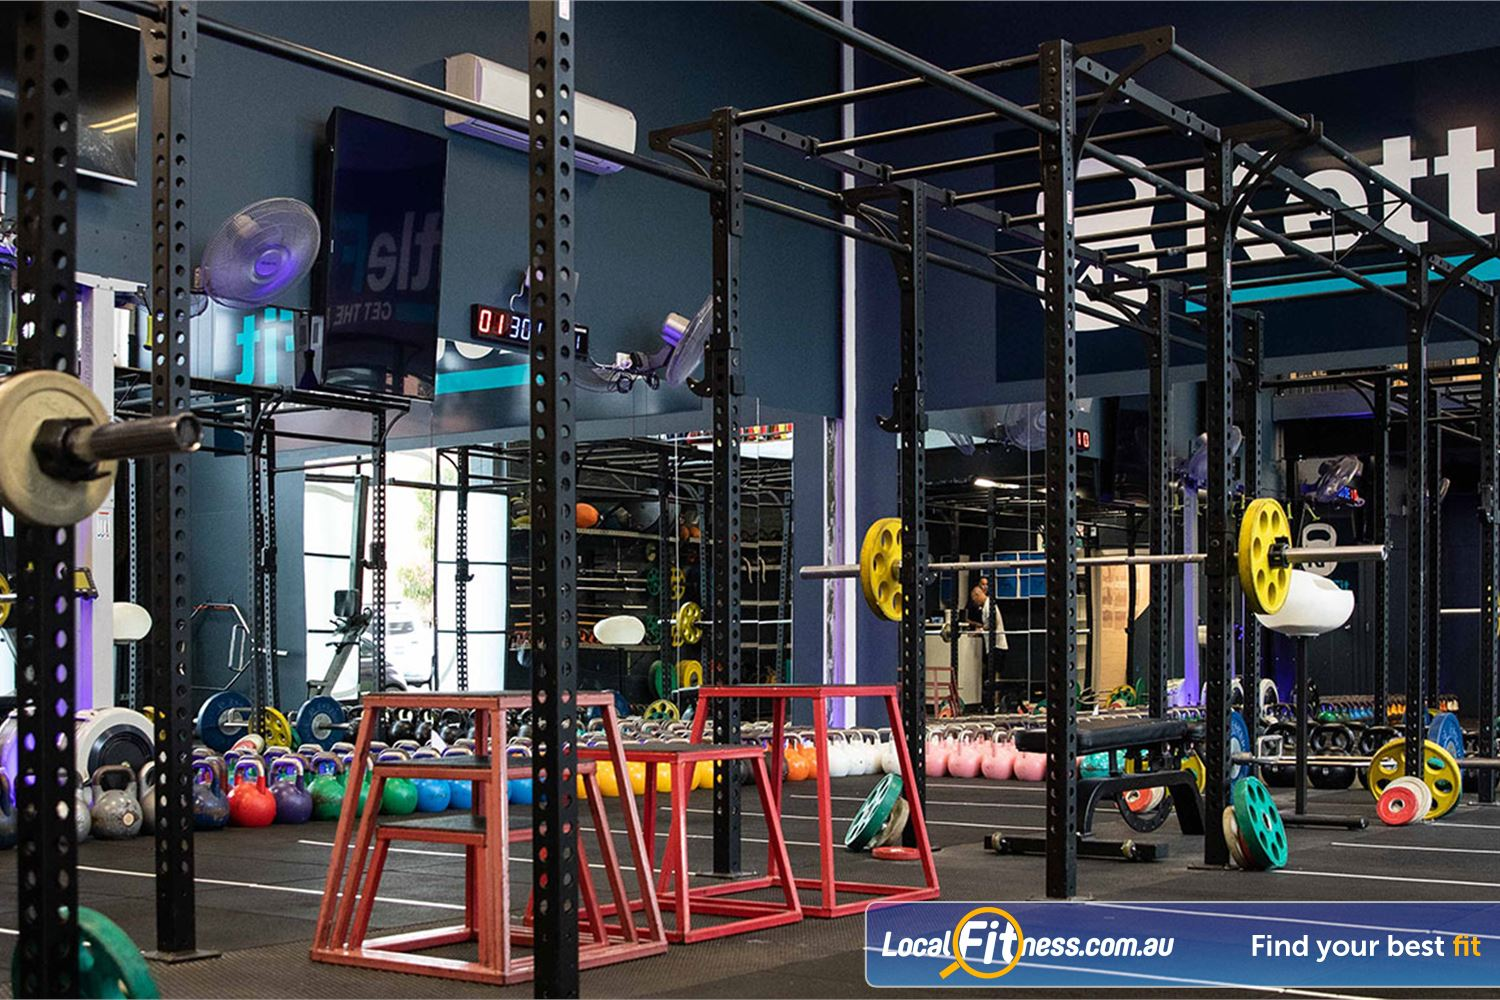 KettleFit Near St Kilda Our fully equipped and dedicated Windsor HIIT gym.